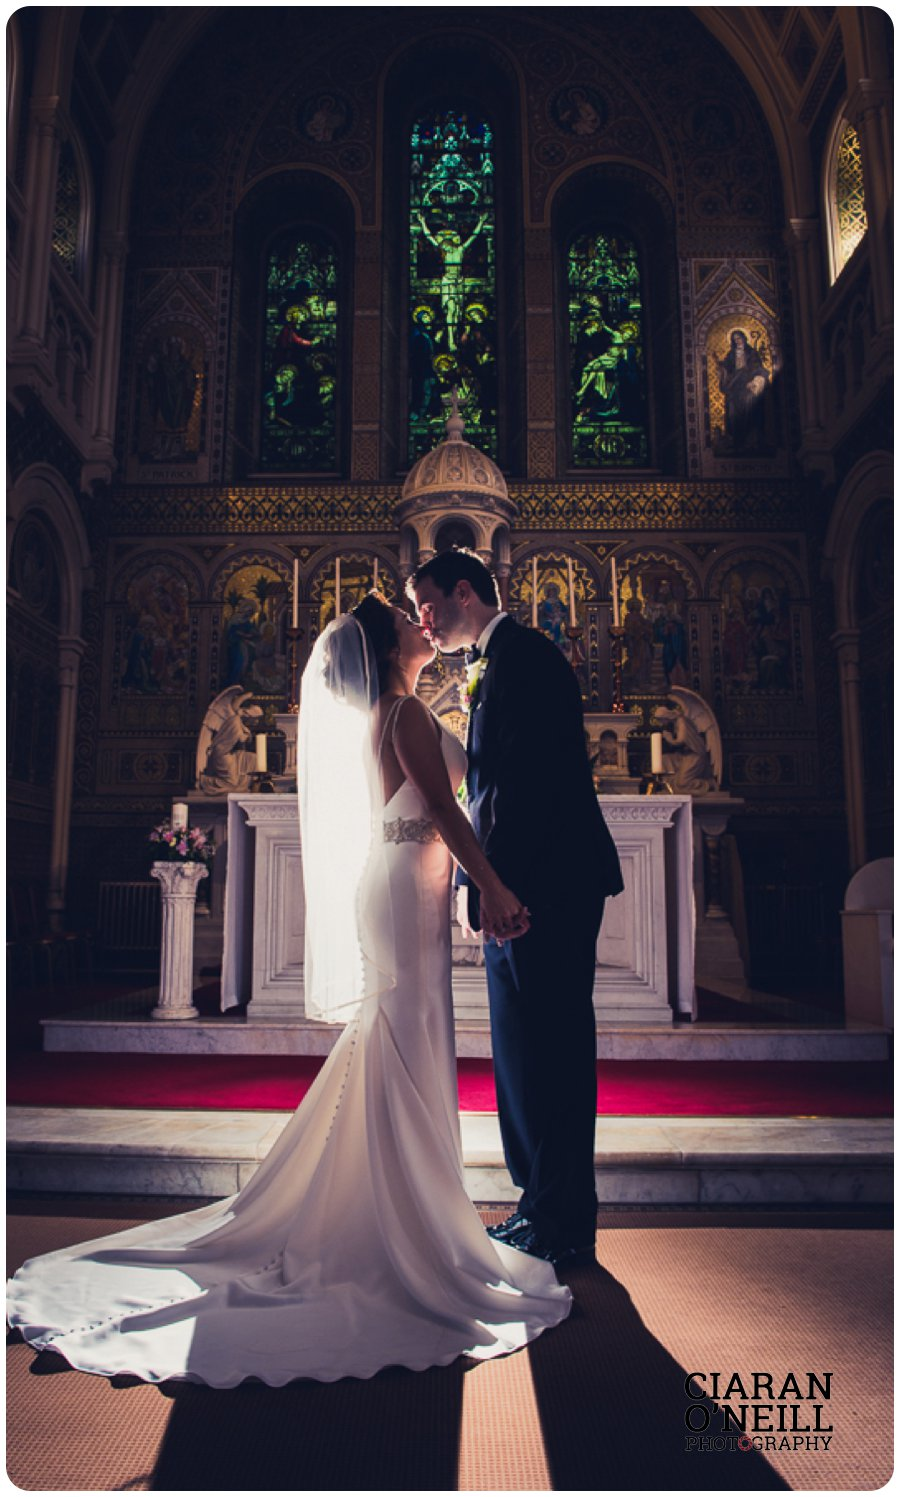 Jacqueline & Keith's wedding at Darver Castle by Ciaran O'Neill Photography 14